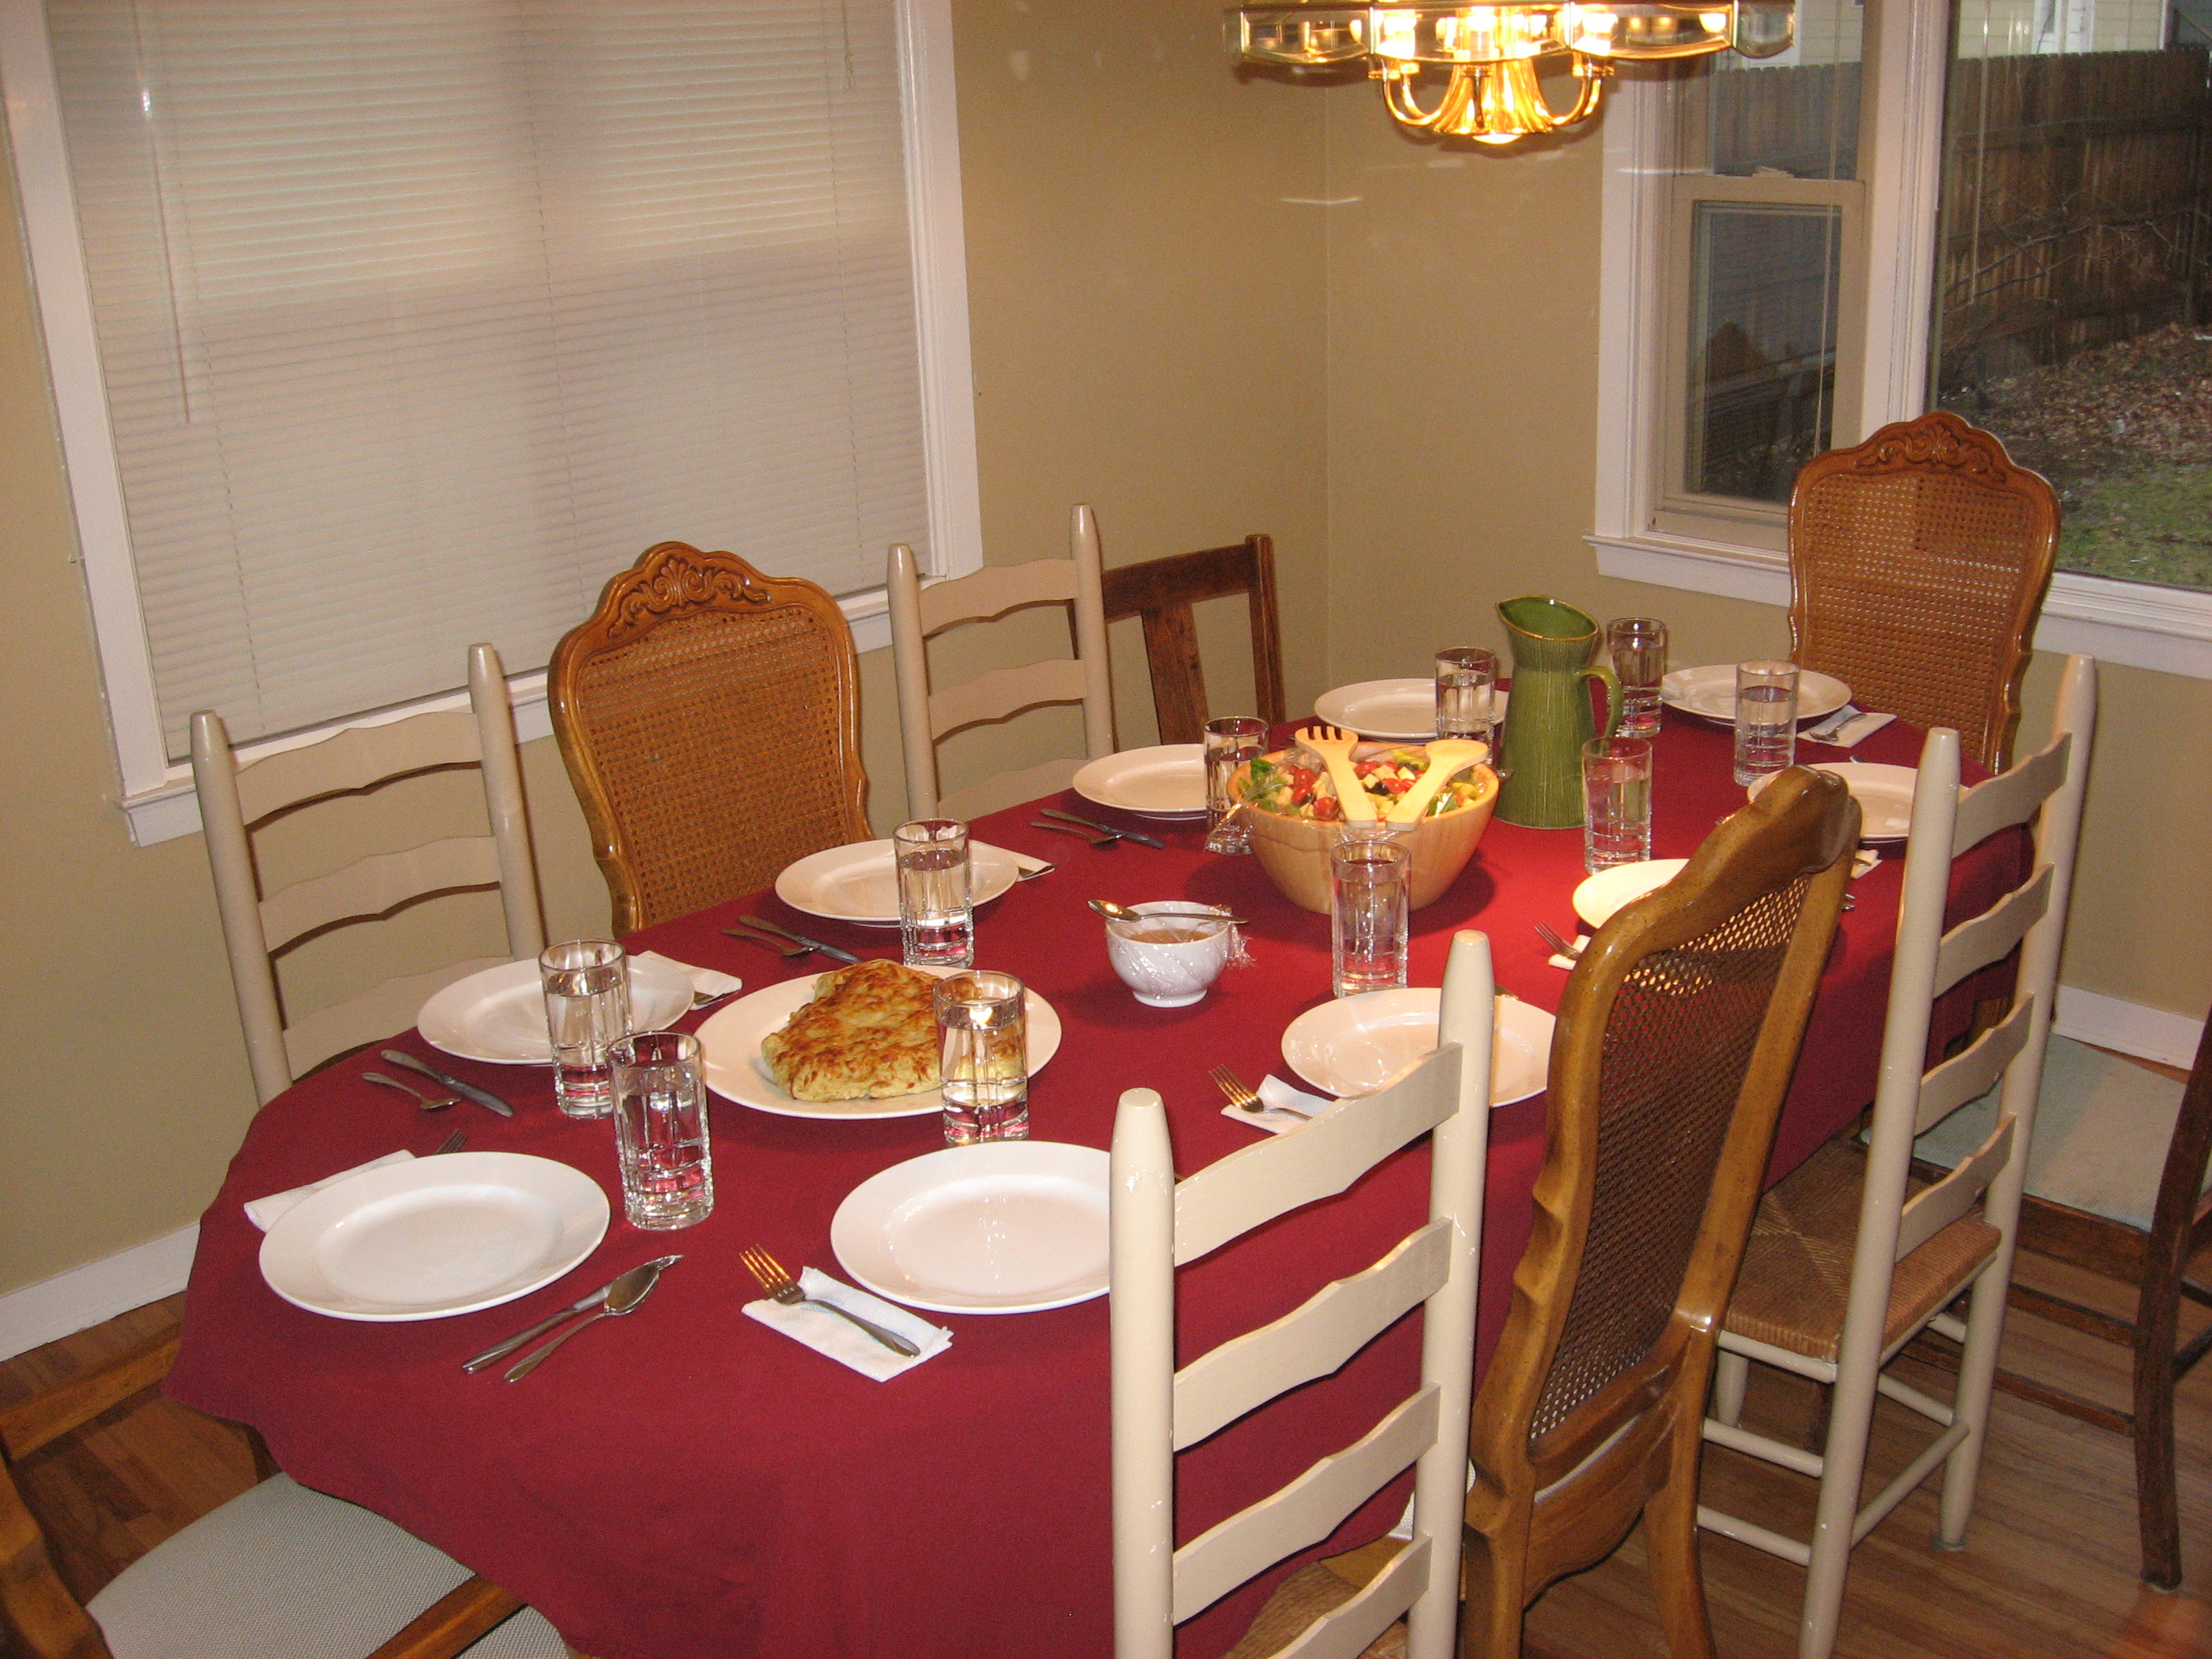 How To Set A Dinner Table file:set dinner table - wikimedia commons